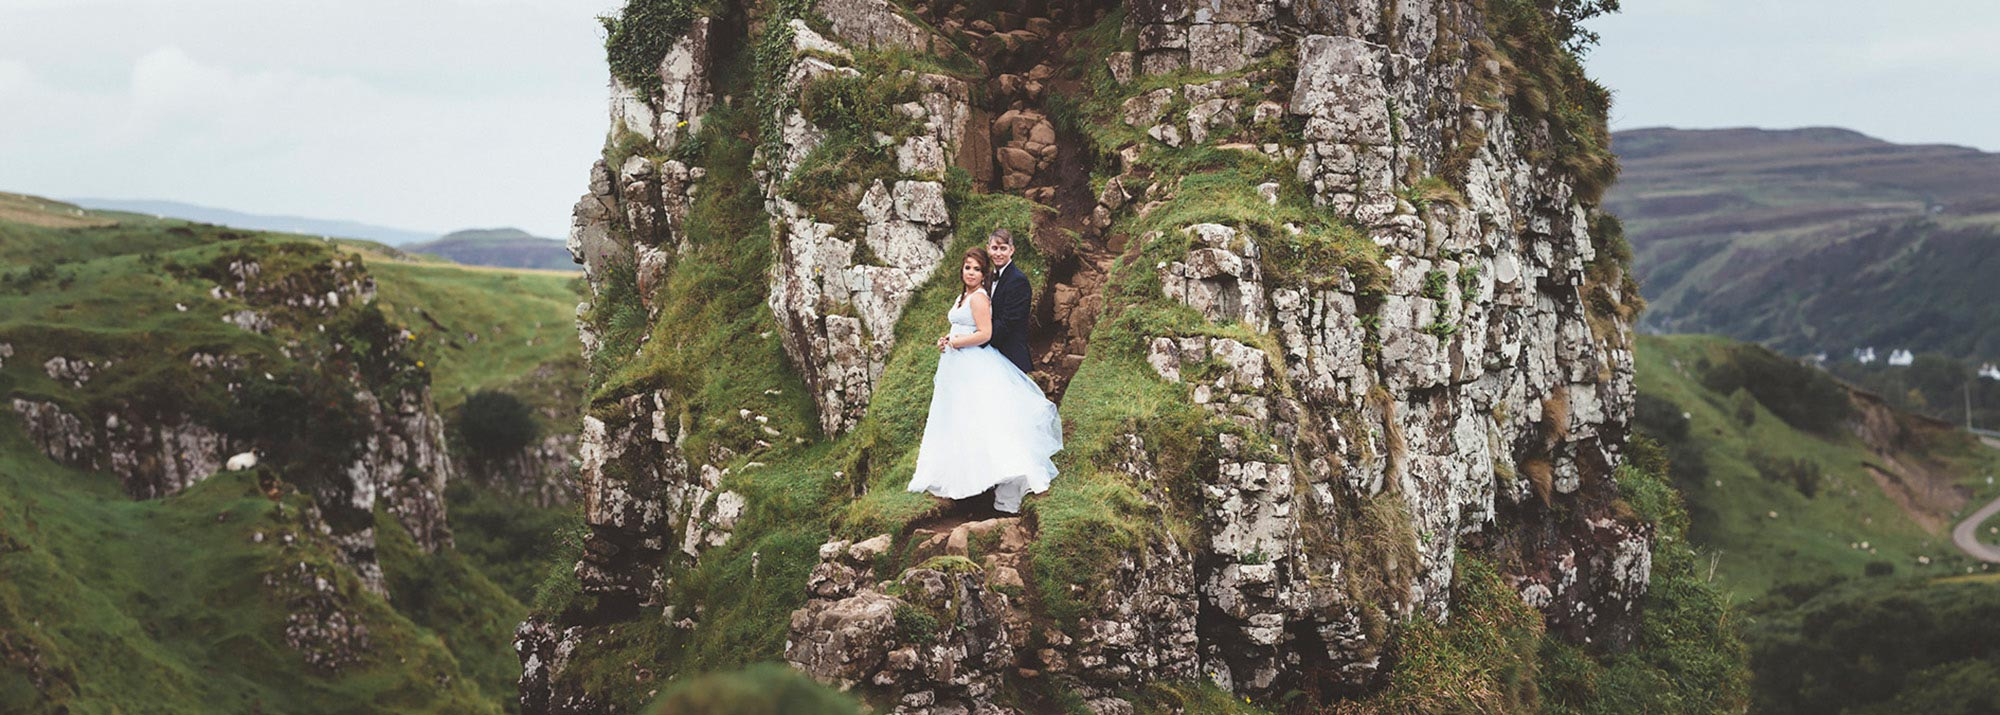 Wilson McSheffrey Wedding and Elopement Photography, Isle of Skye, Scotland